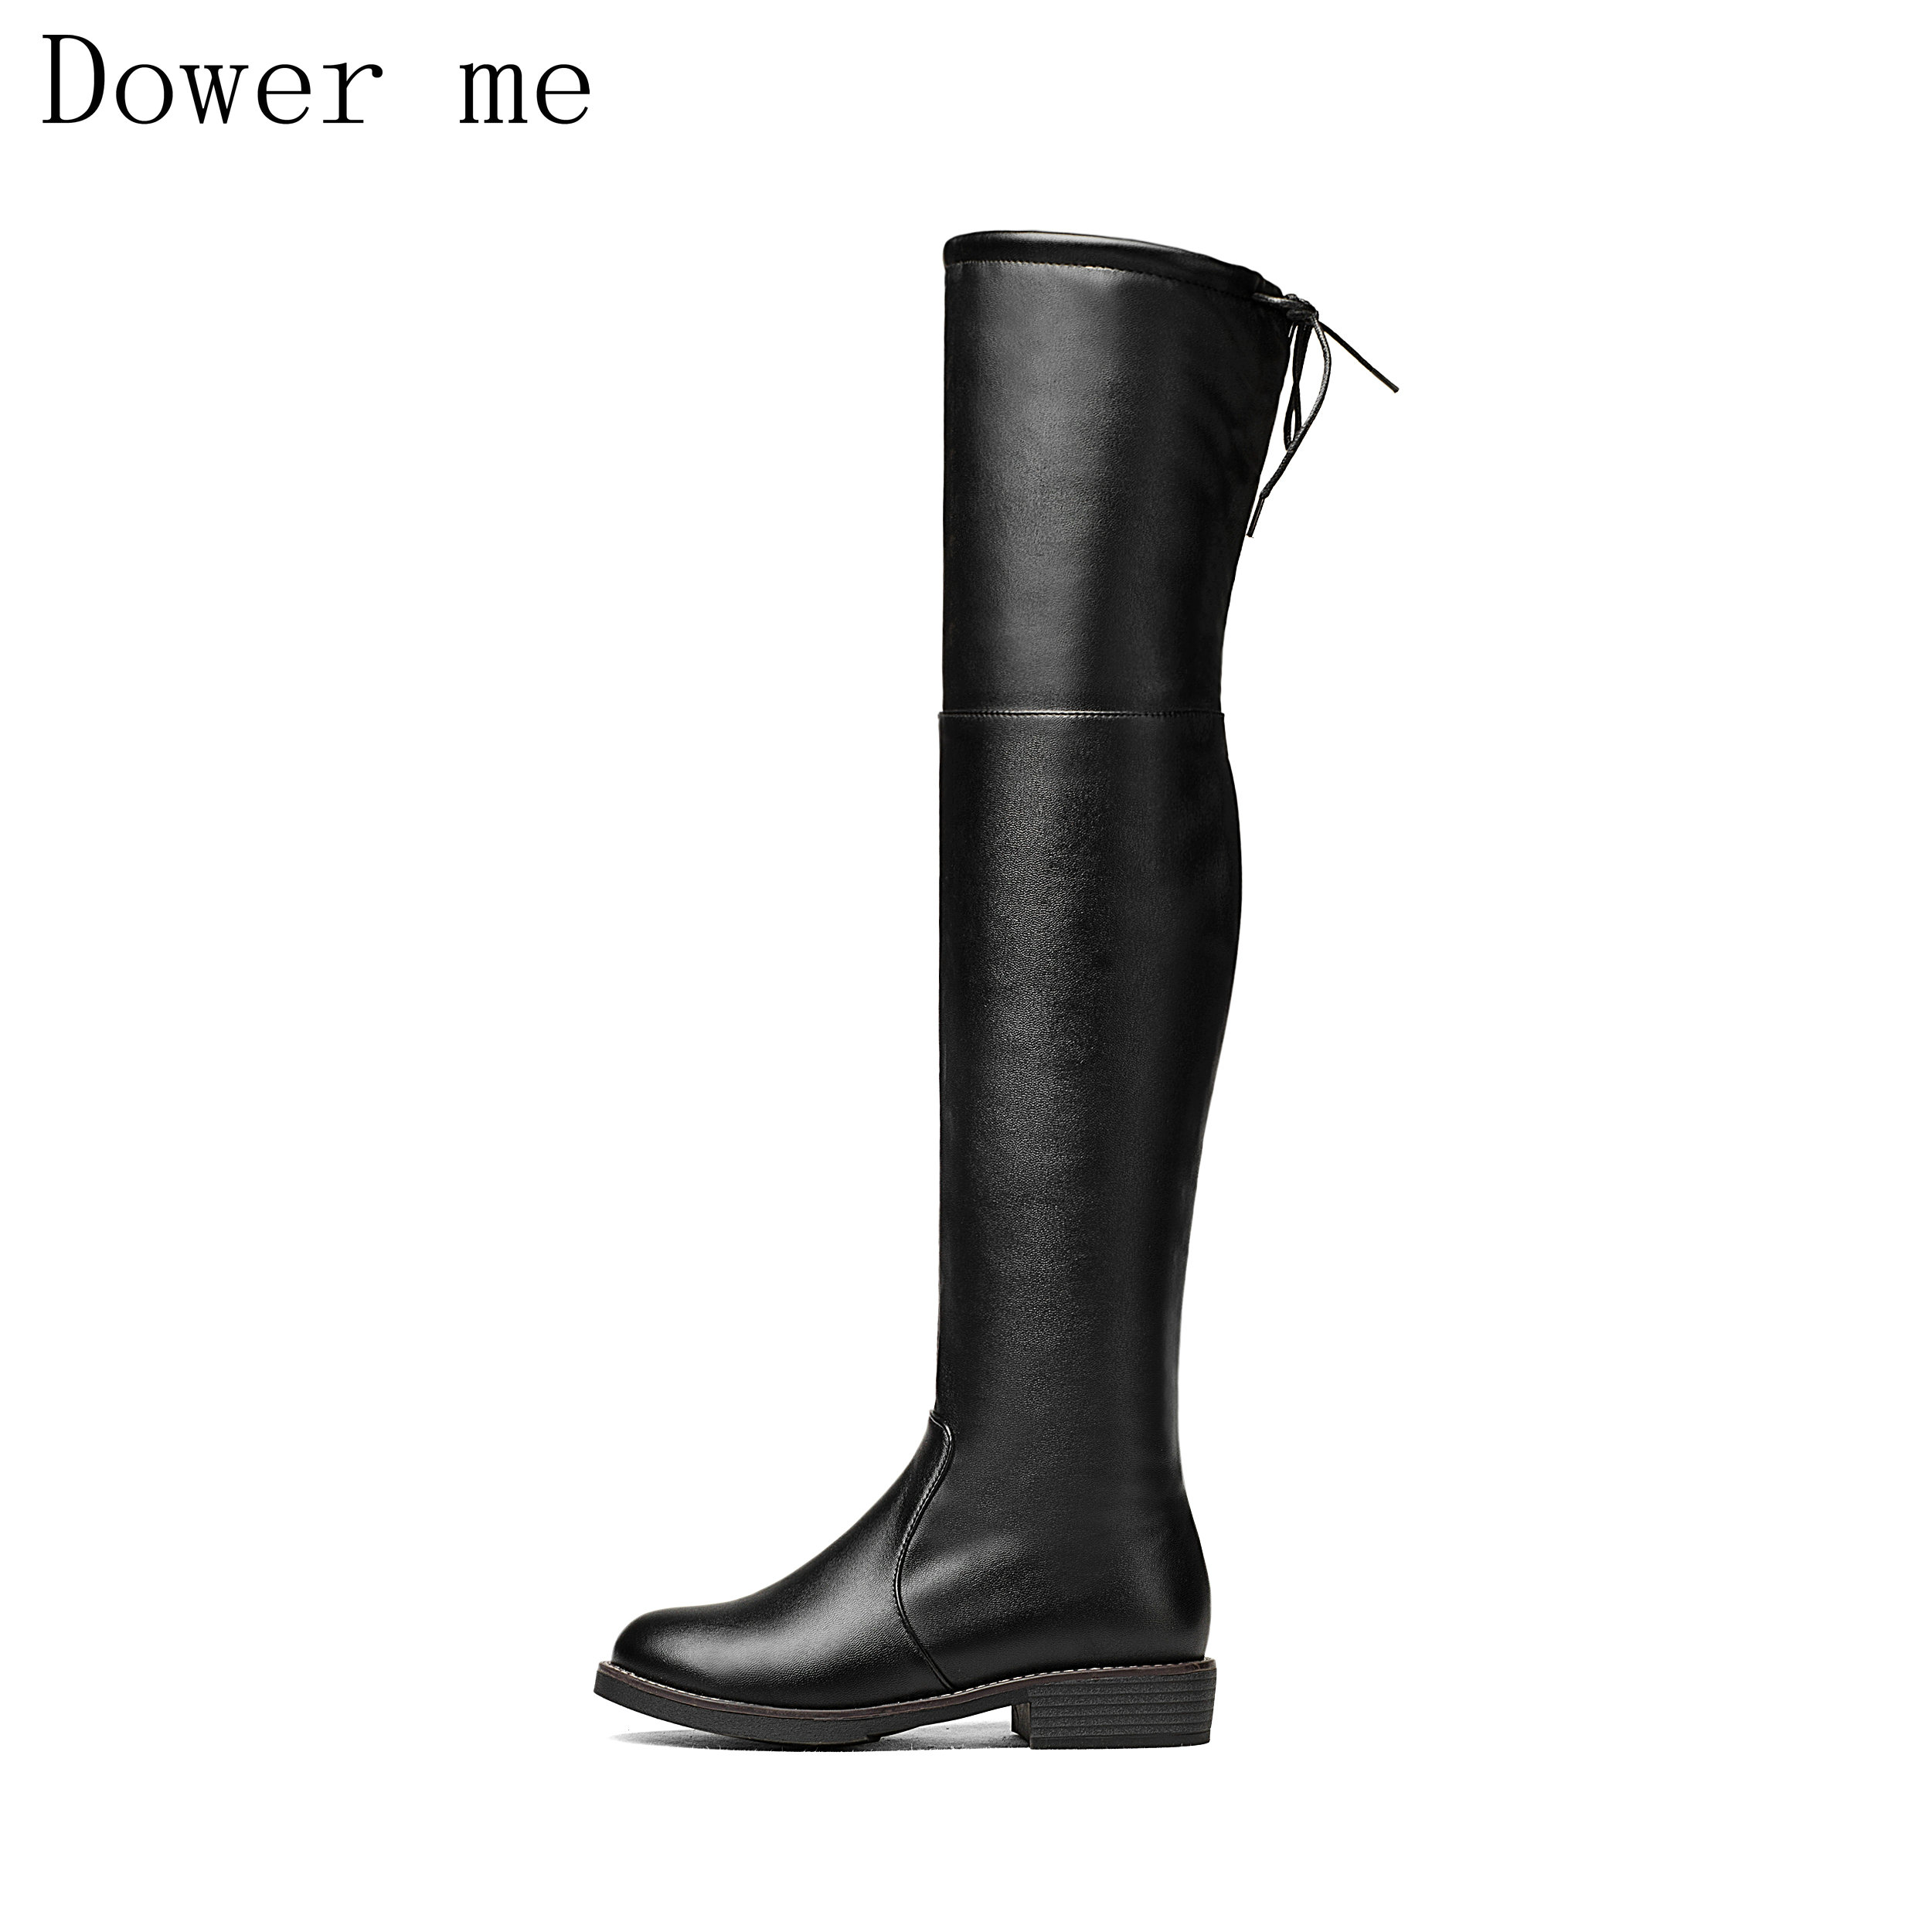 SFZB Over The Knee Boots Square Med Heel Women Boots Sexy Ladies Stretch Fabric Fashion Boots Black Size 34-43